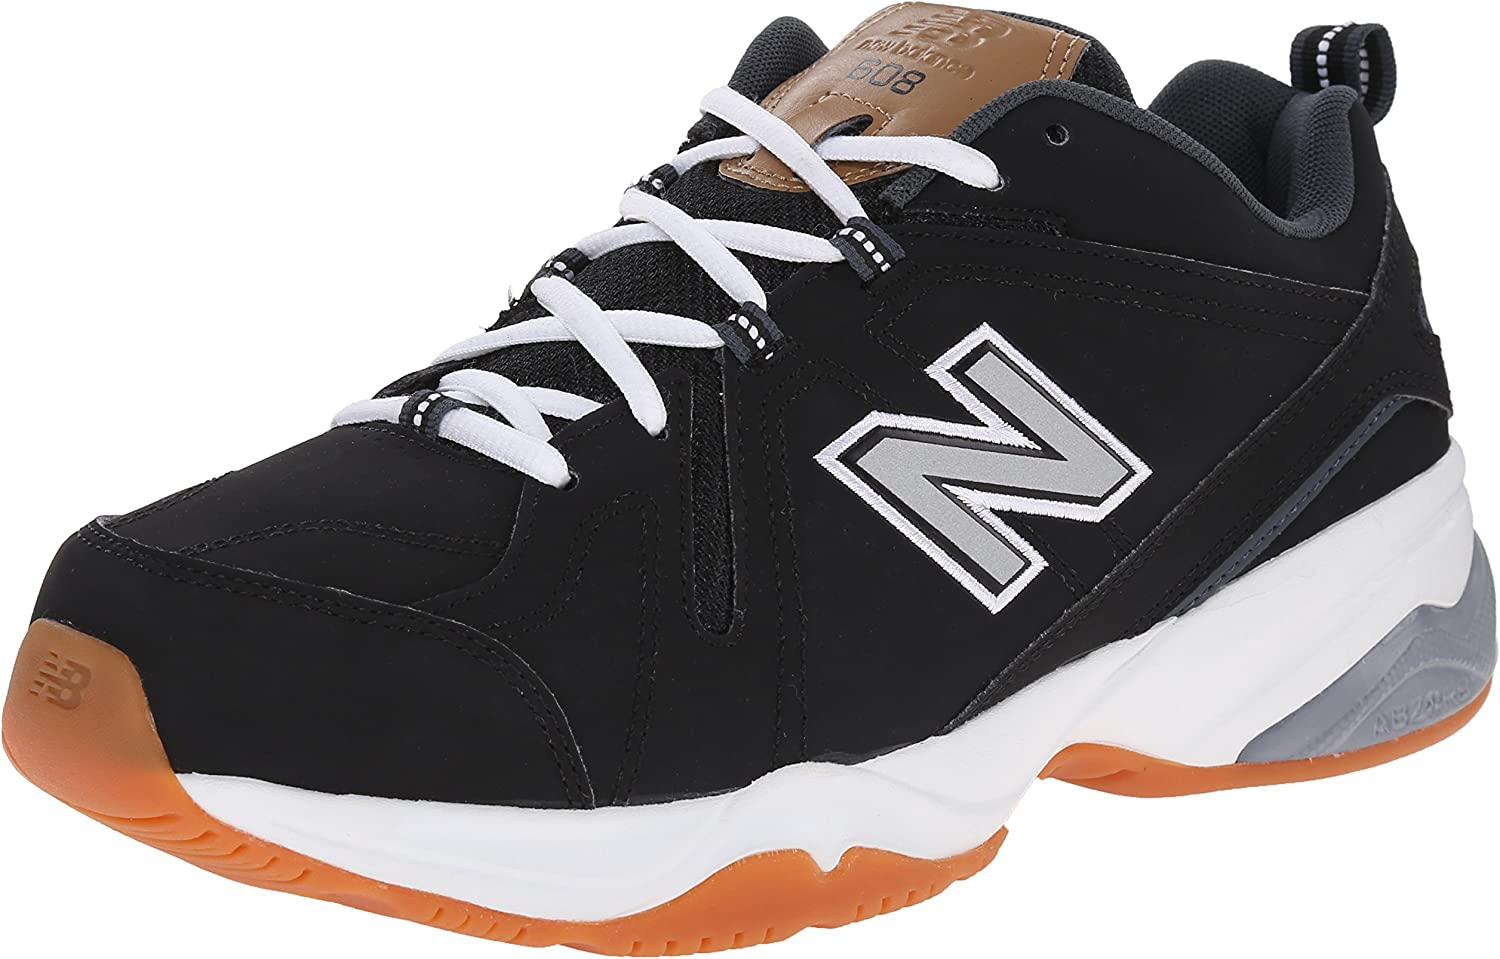 NEW BALANCE MENS Mx608v4| BEST SHOES FOR JUMPING